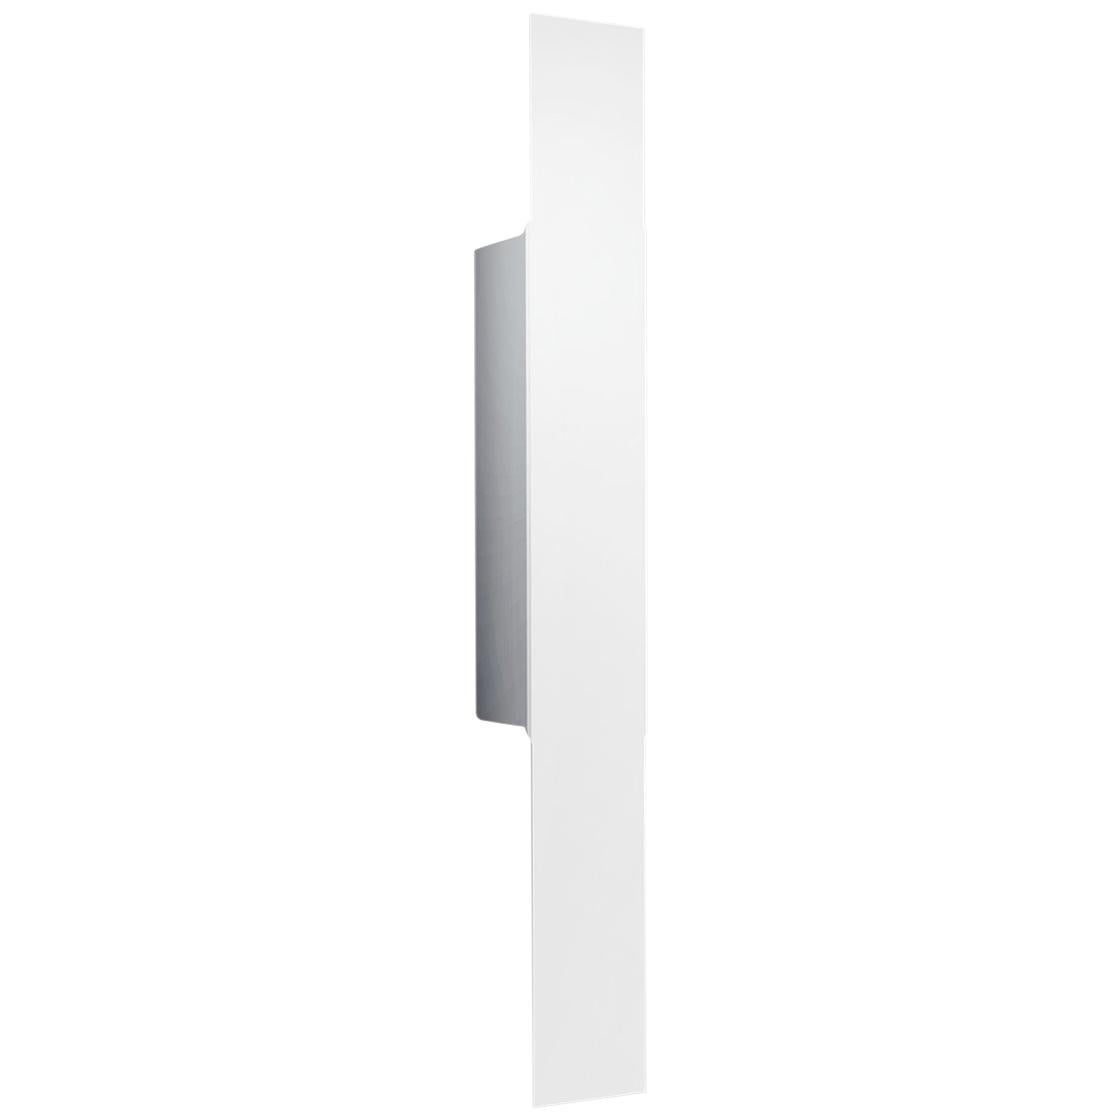 Leucos Opi P Wall Light in Matte White by Alessandro Piva